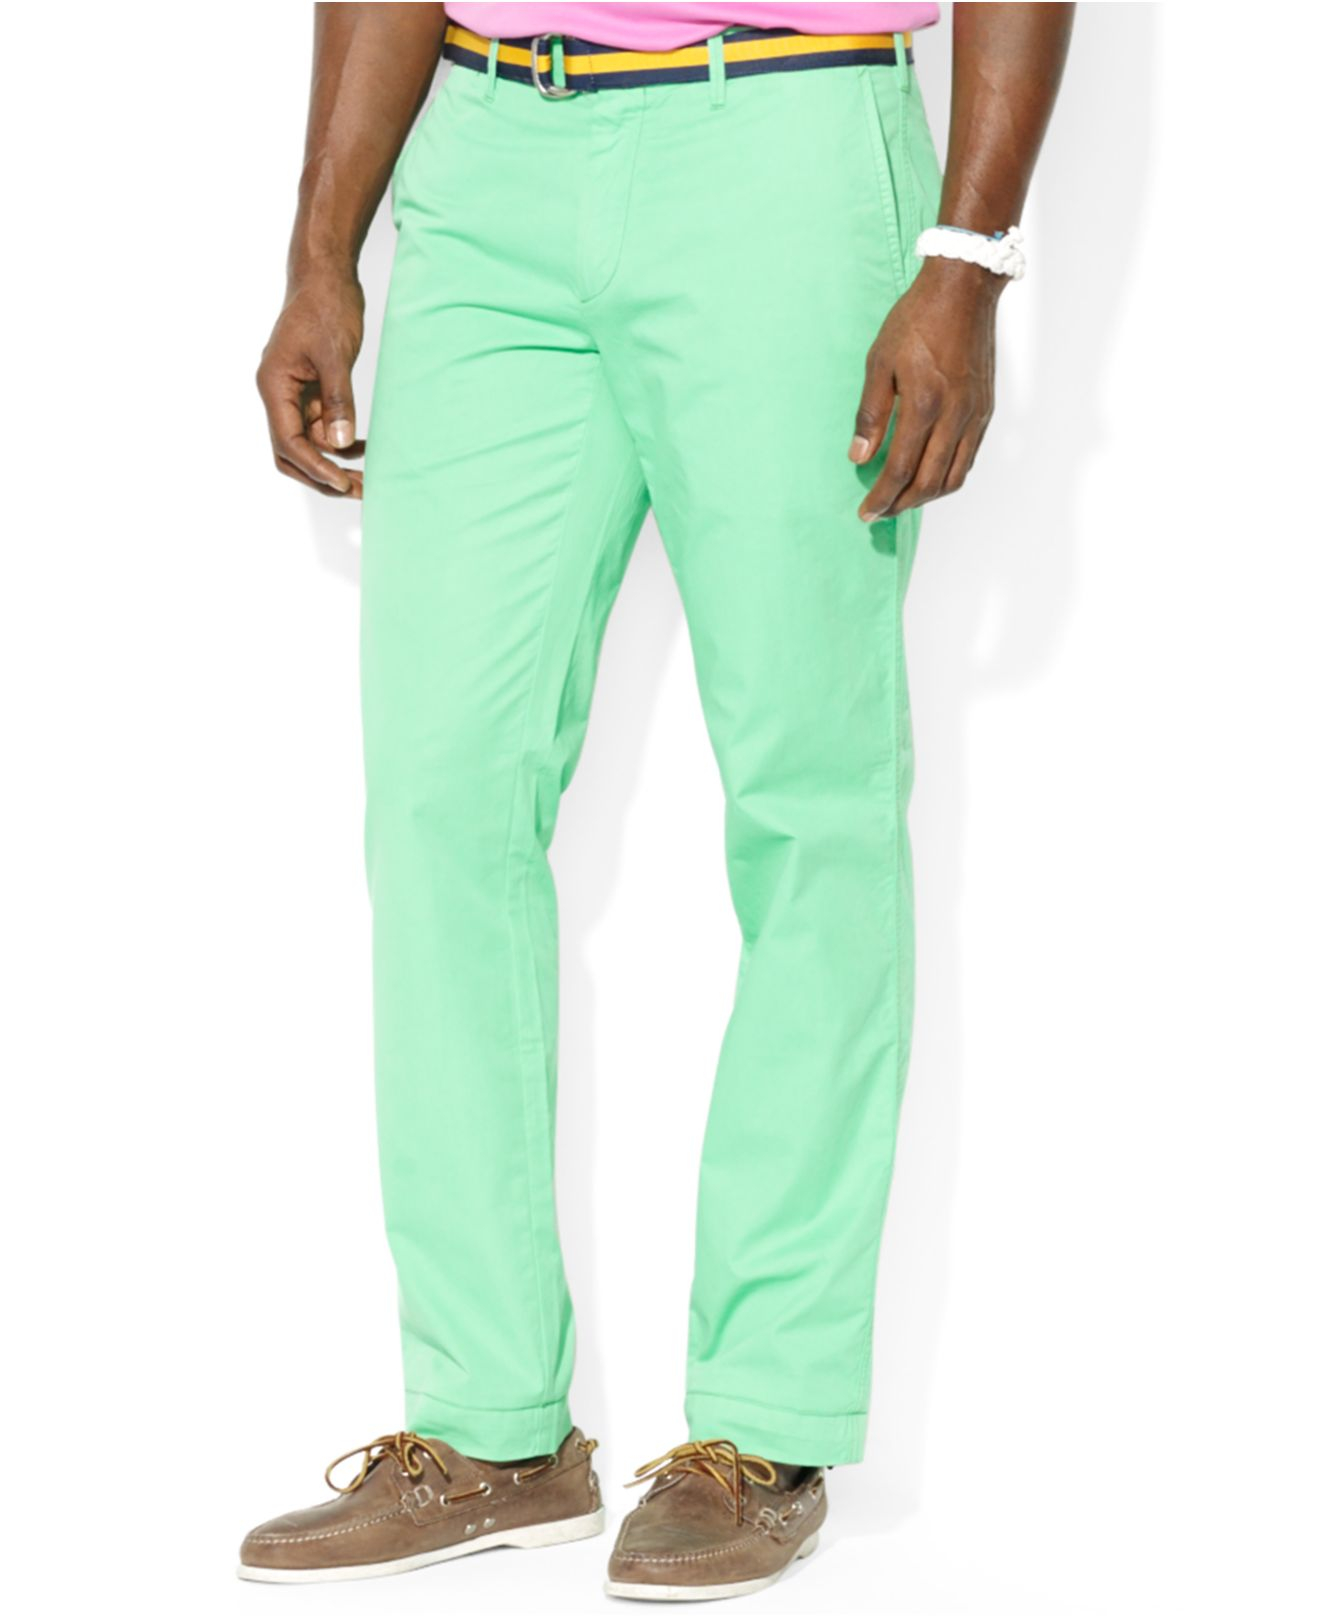 4f75f708369d ... inexpensive lyst polo ralph lauren polo big and tall garment dyed  hudson pants 936f0 3cf0a